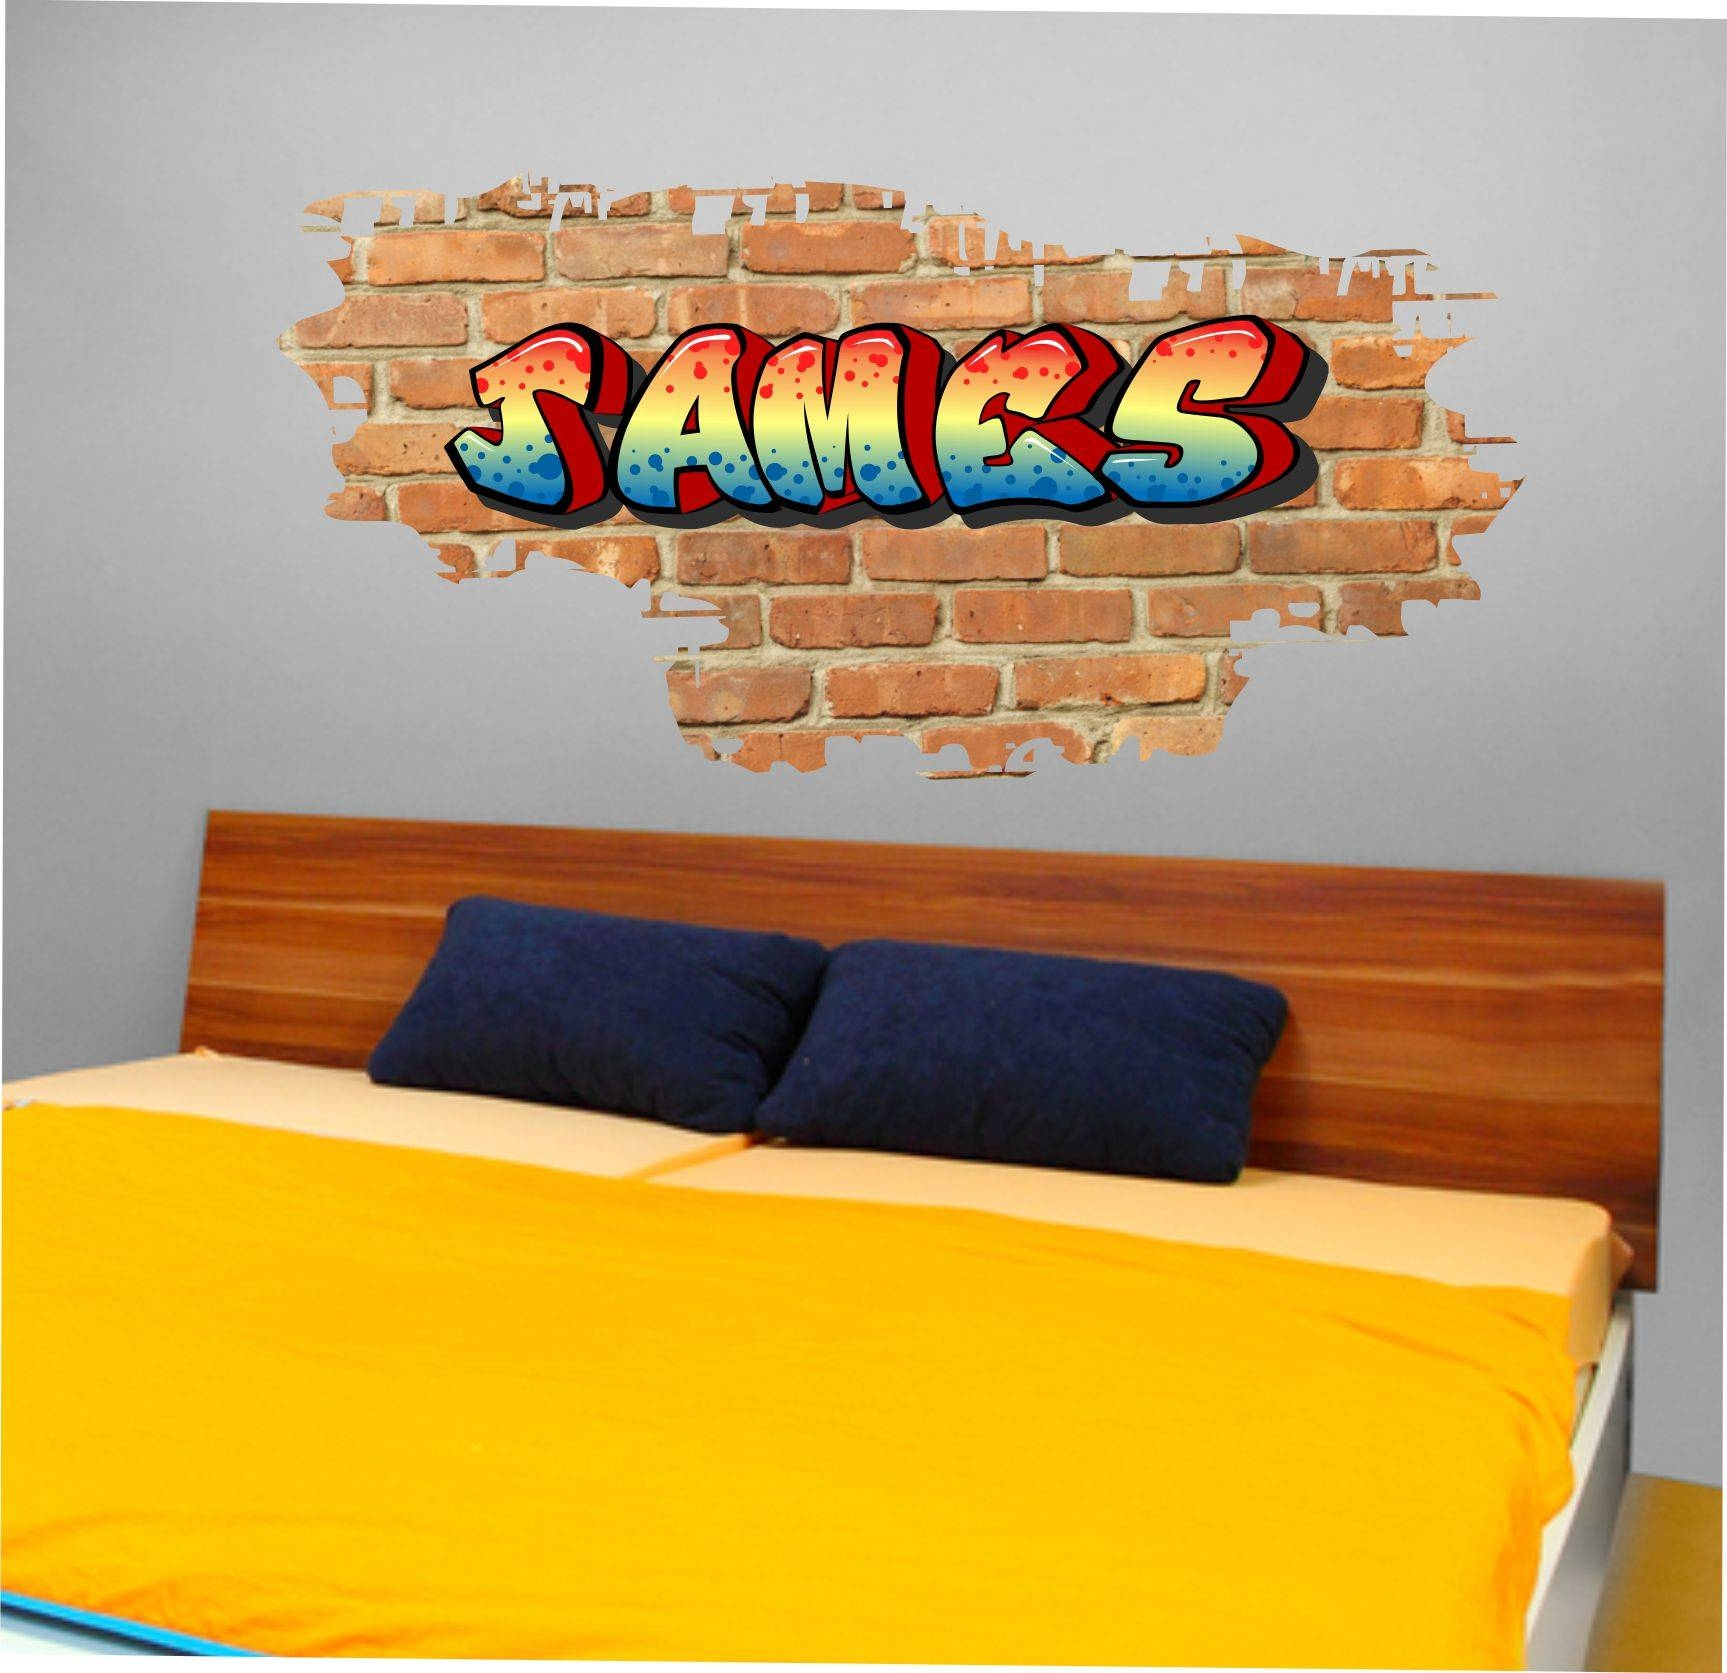 The Grafix Studio | 01 Personalised Graffiti Brick & Name Wall Sticker Inside 2018 Graffiti Wall Art Stickers (View 21 of 30)